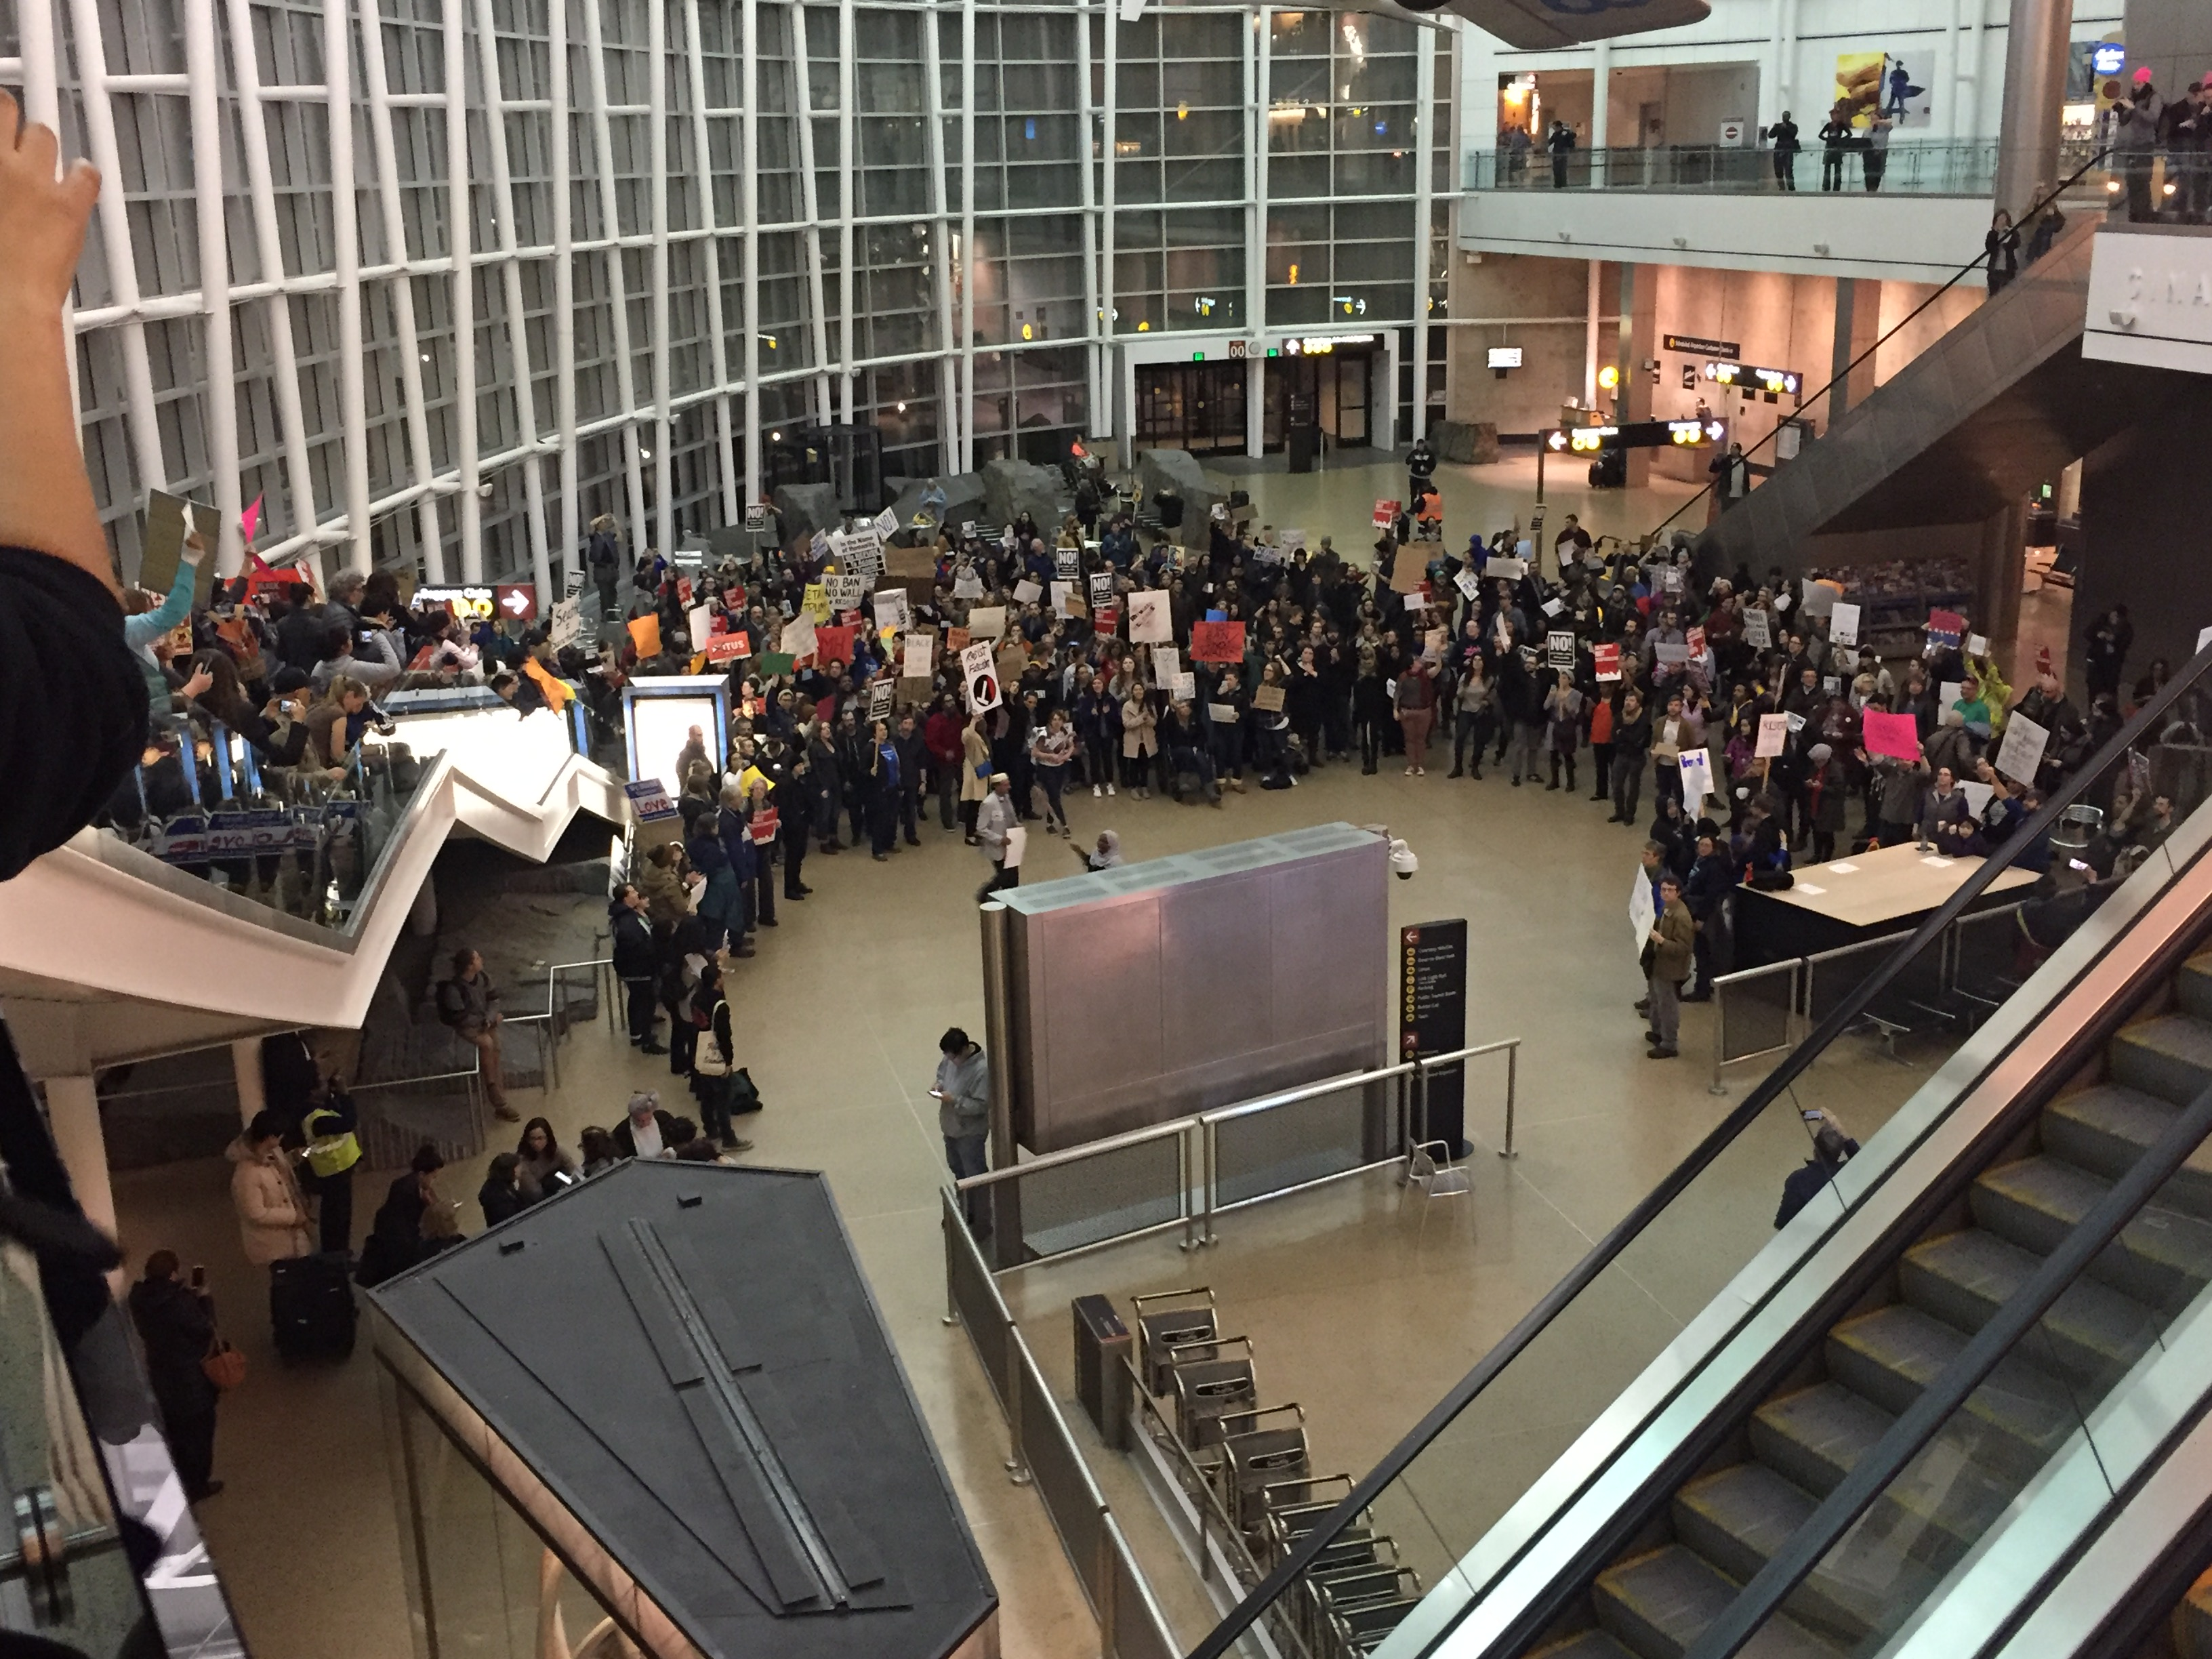 UAW 4121 members join hundreds in the Seattle community for an impromptu action at SeaTac airport protesting Trump's first immigration Executive Order.